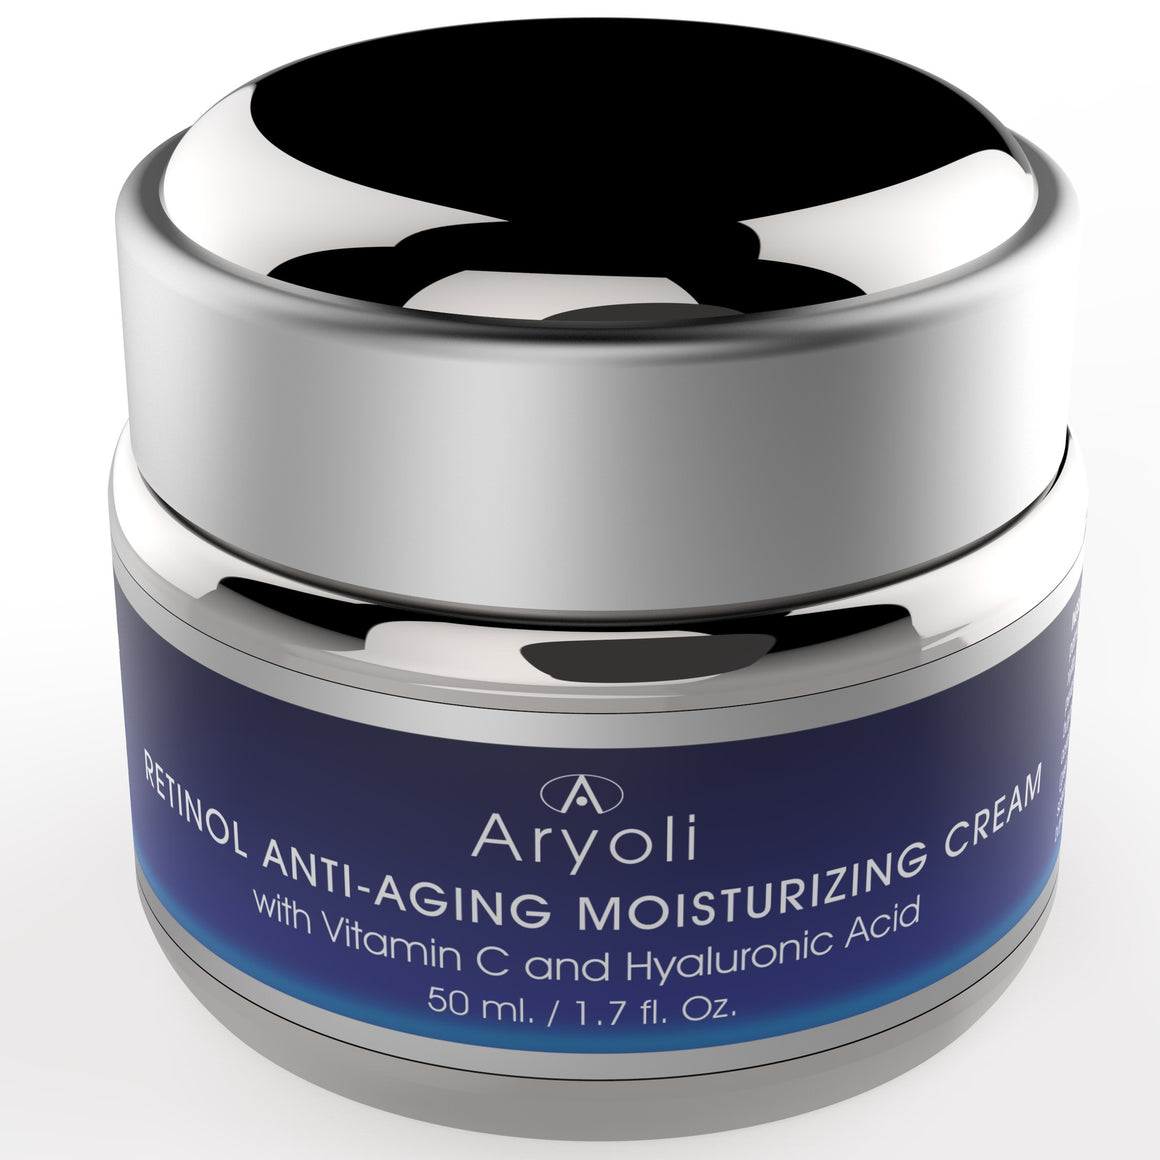 Retinol Anti-Aging Moisturizing Pro Cream by Aryoli Naturals 1.7 oz